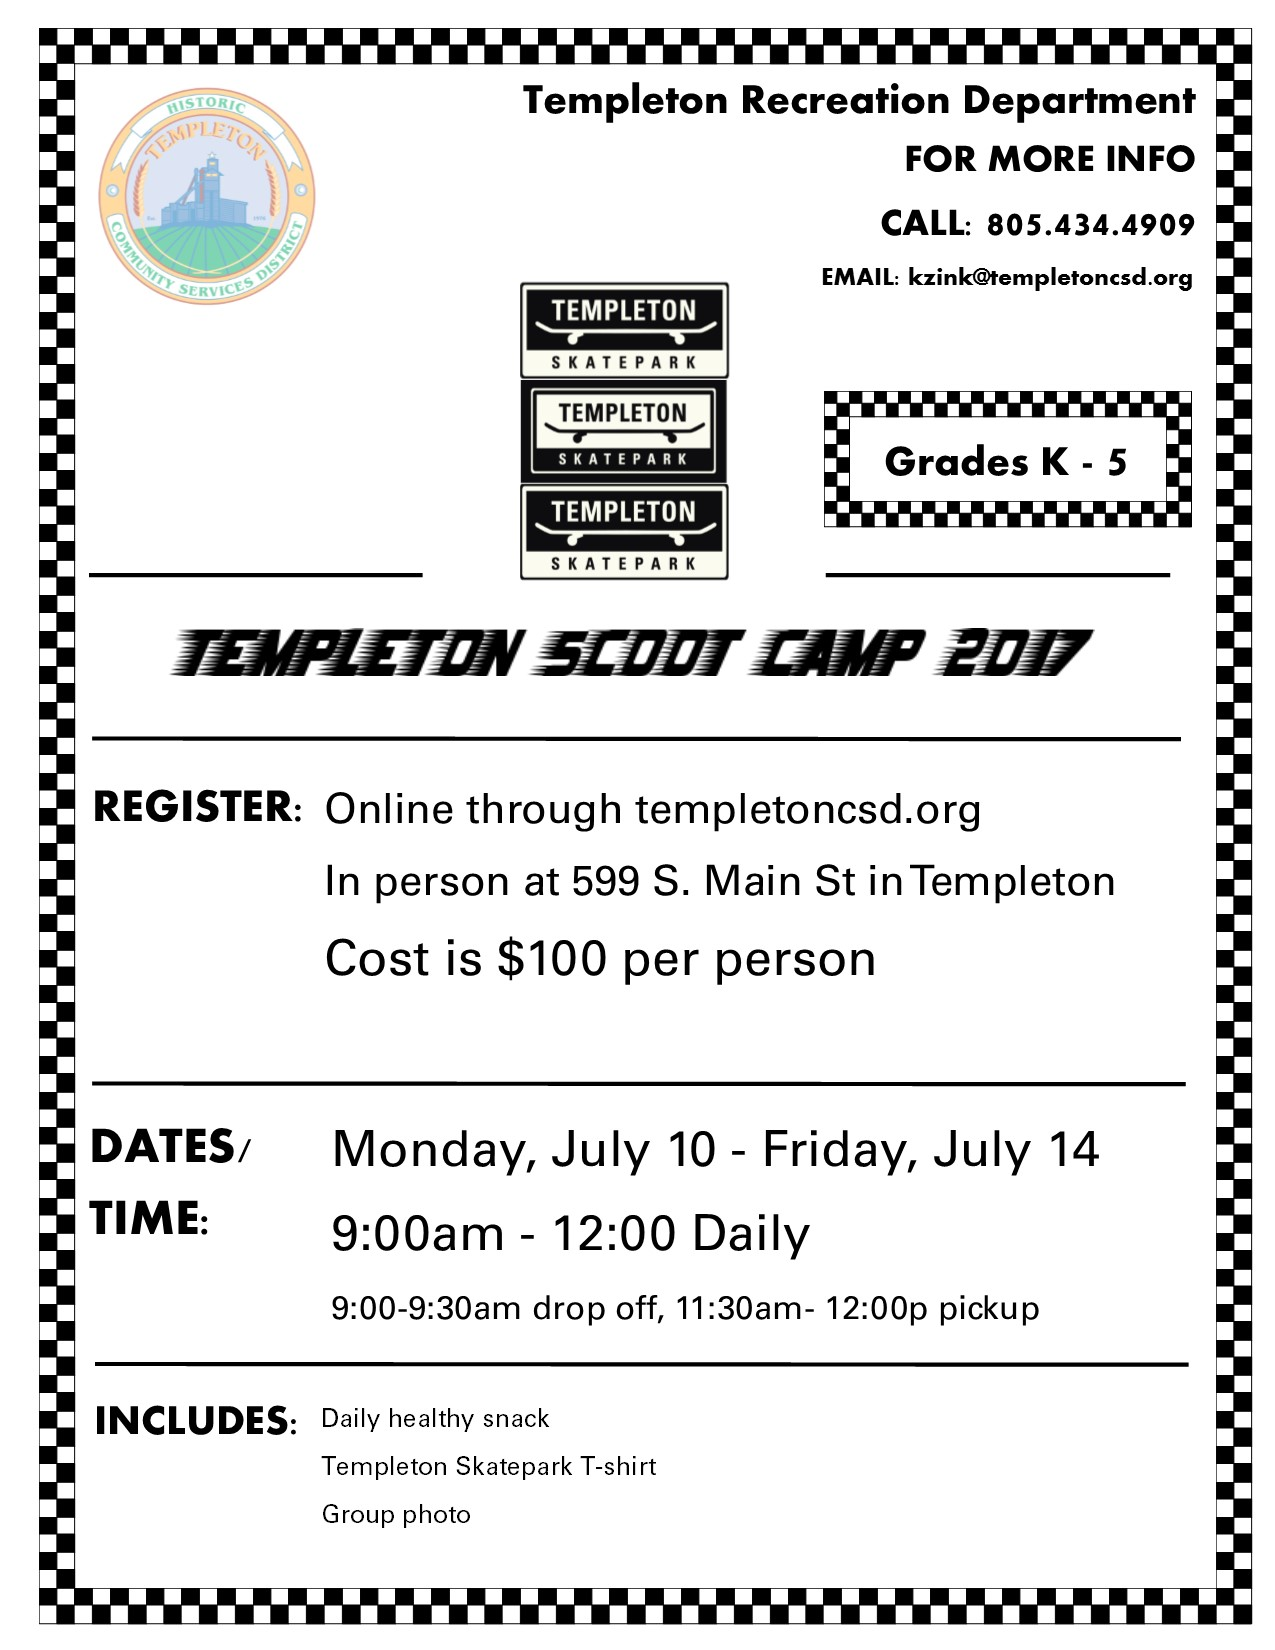 Scoot camp flyer 2017.jpg